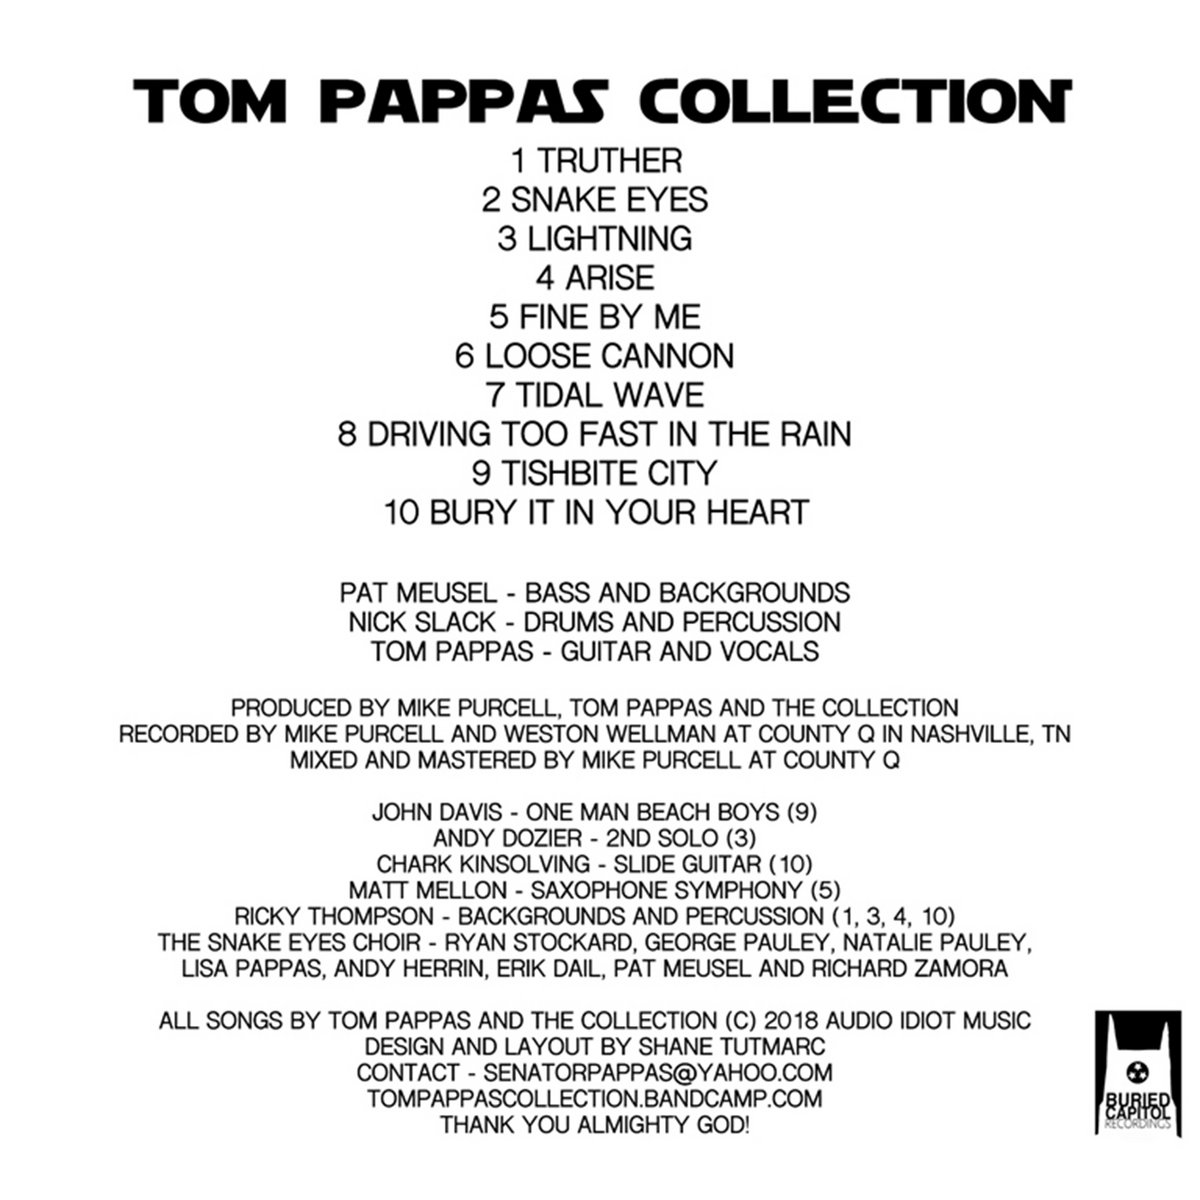 TOM PAPPAS COLLECTION